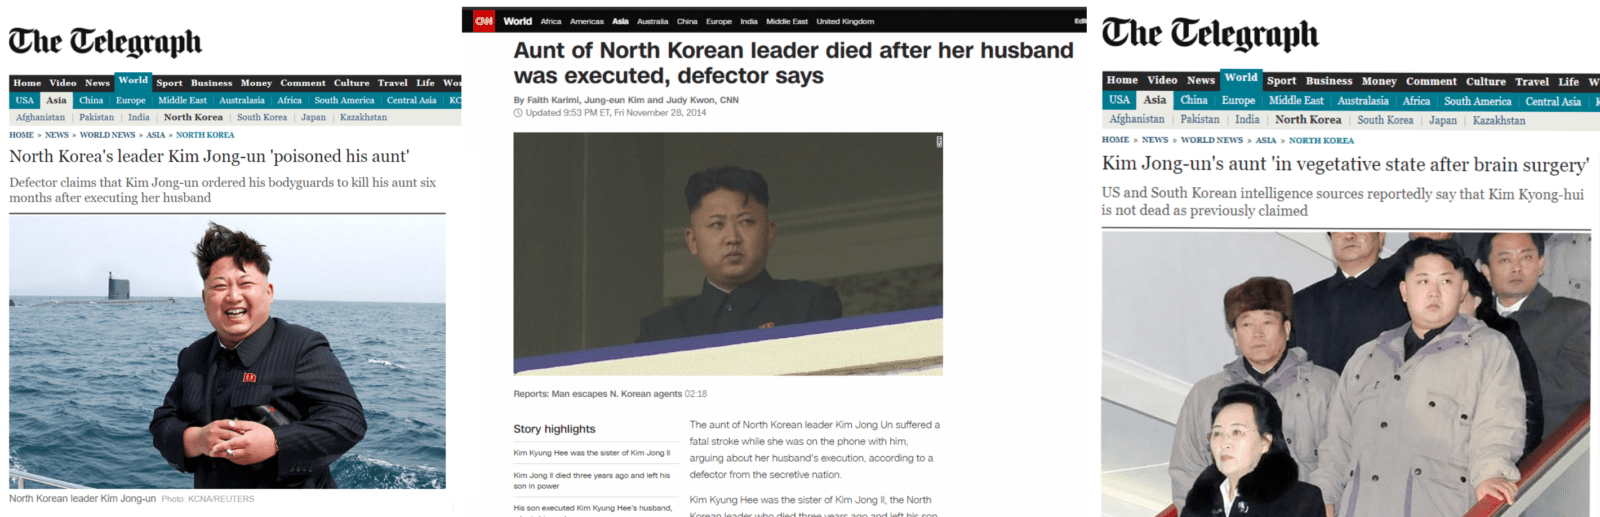 FireShot-Capture-088-North-Koreas-leader-Kim-Jong-un-poisoned-his-aunt-Telegraph_-www.telegraph.co_.uk_